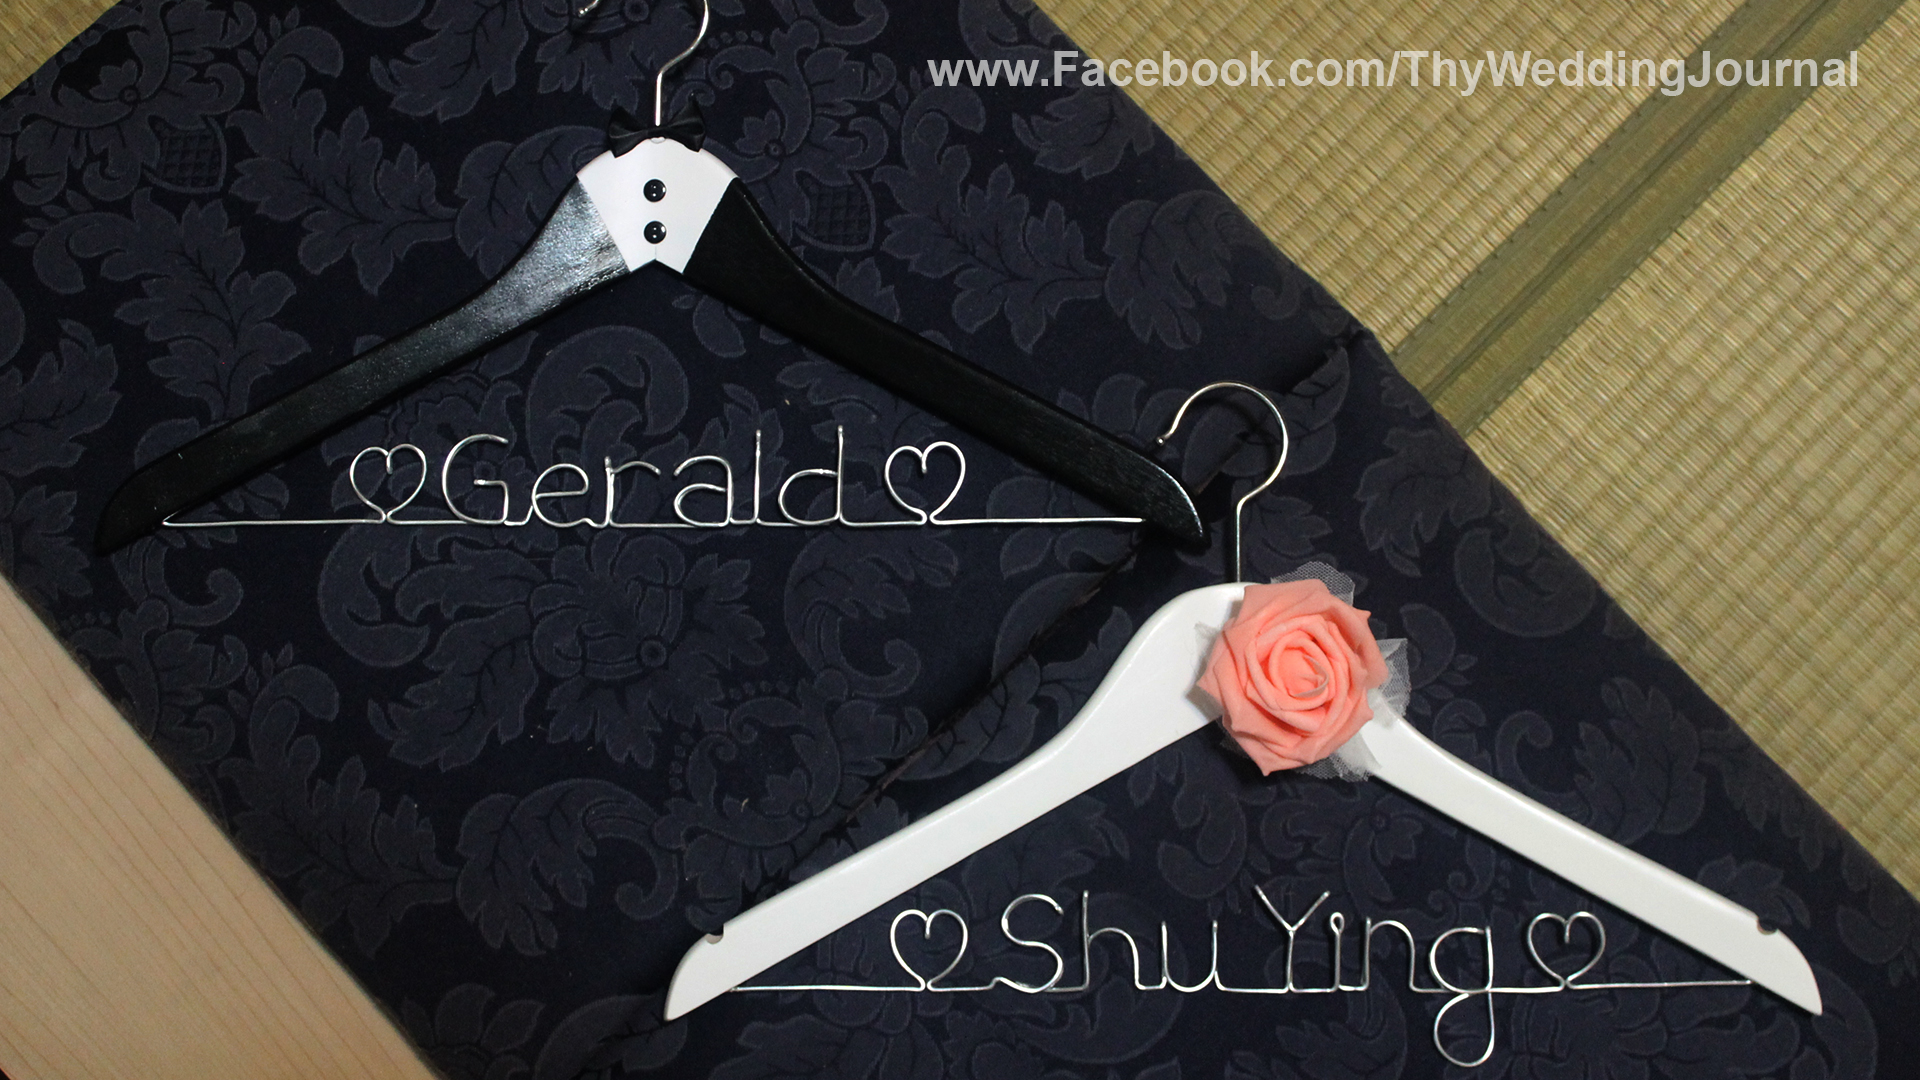 weddings wedding hangers Singapore Western Wedding Hanger